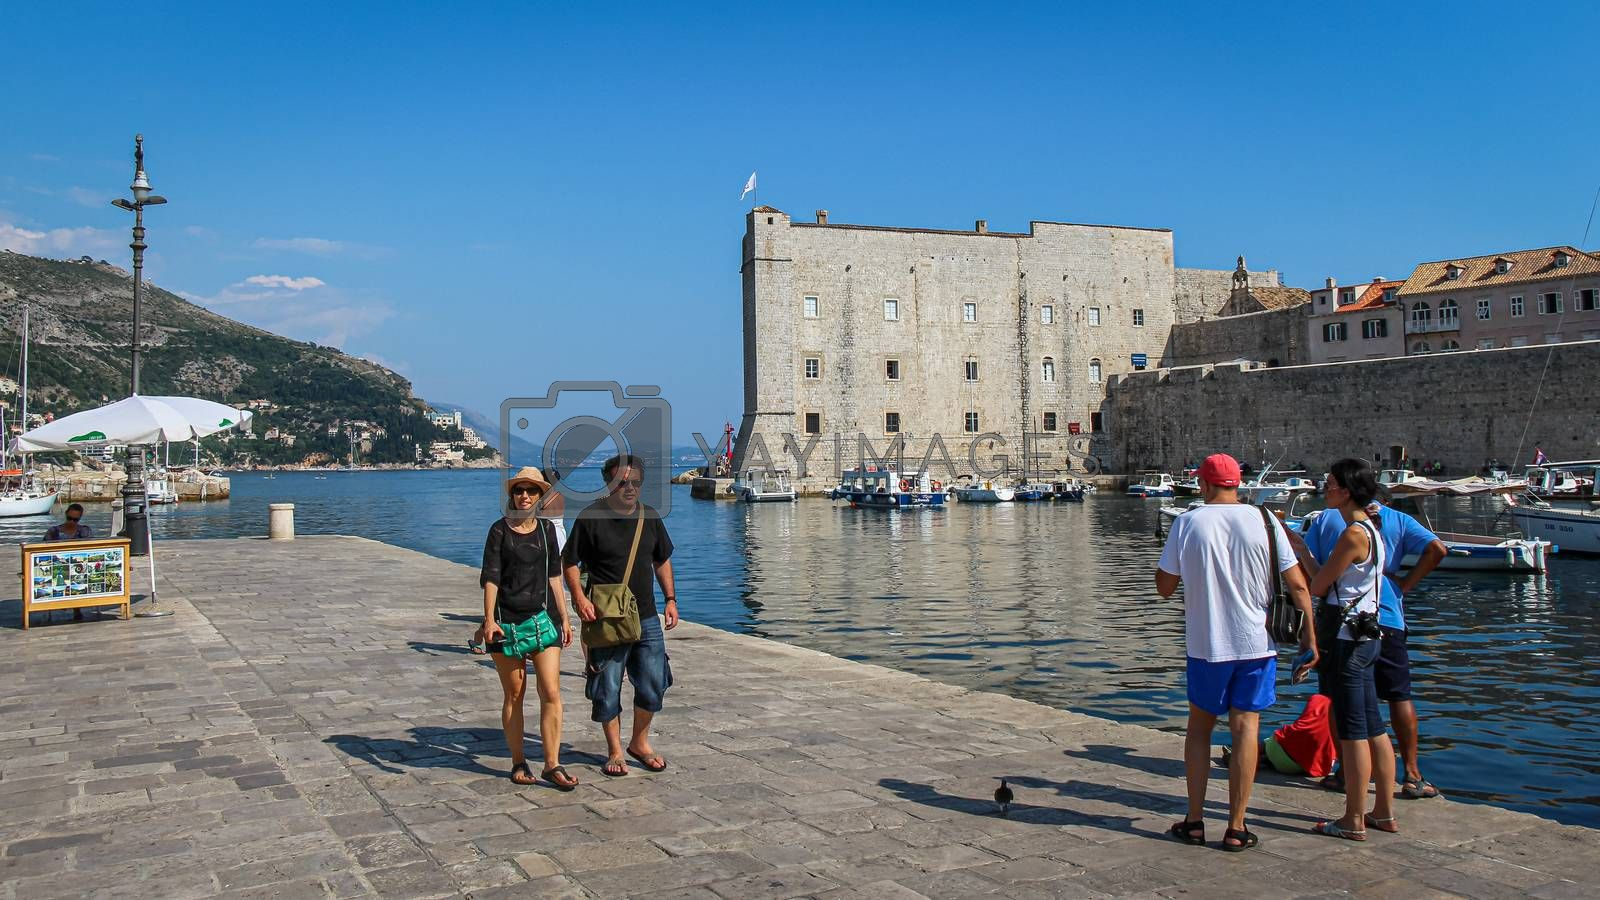 Dubrovnik, Croatia - July 15th 2018: Tourists at the harbour in Dubrovnik's old town at the Maritime Museum, Croatia